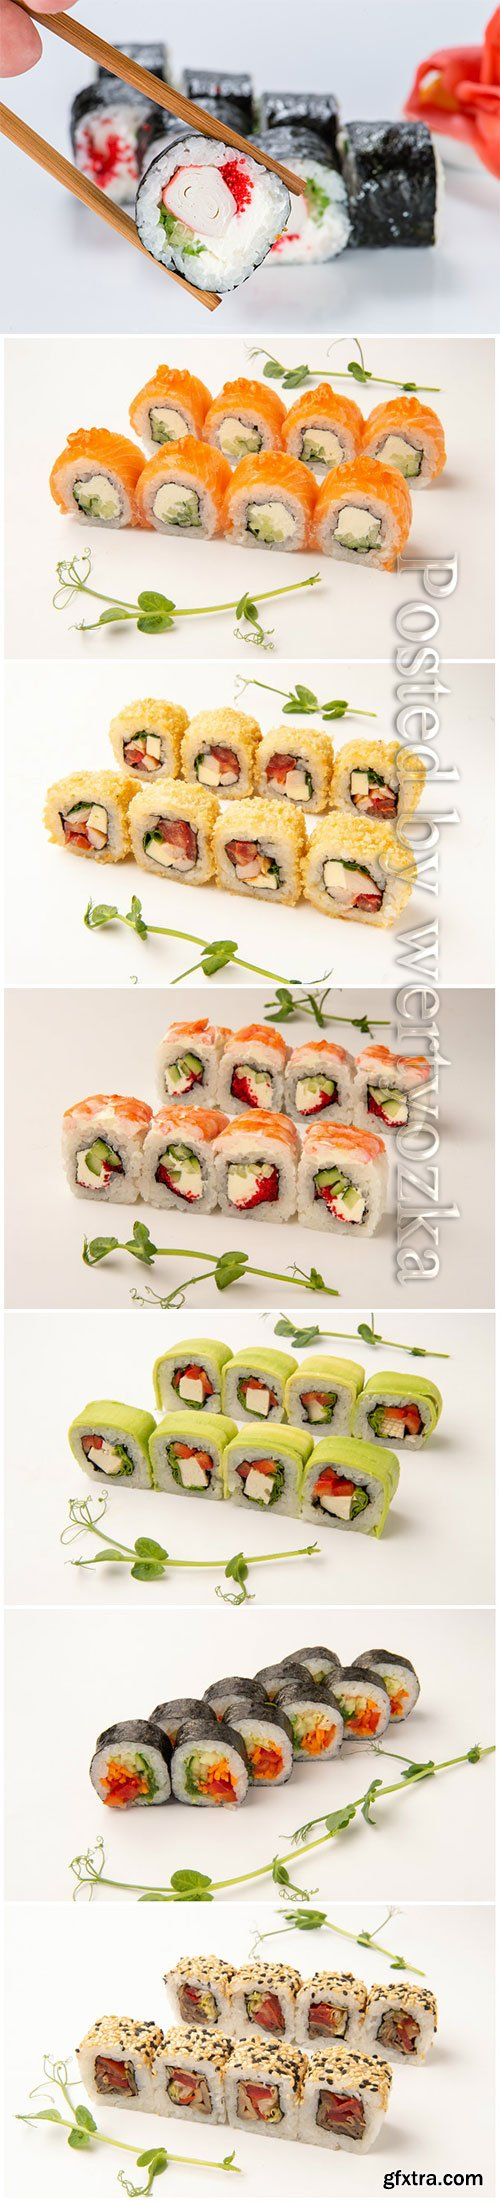 Sets of delicious fresh sushi on a white background